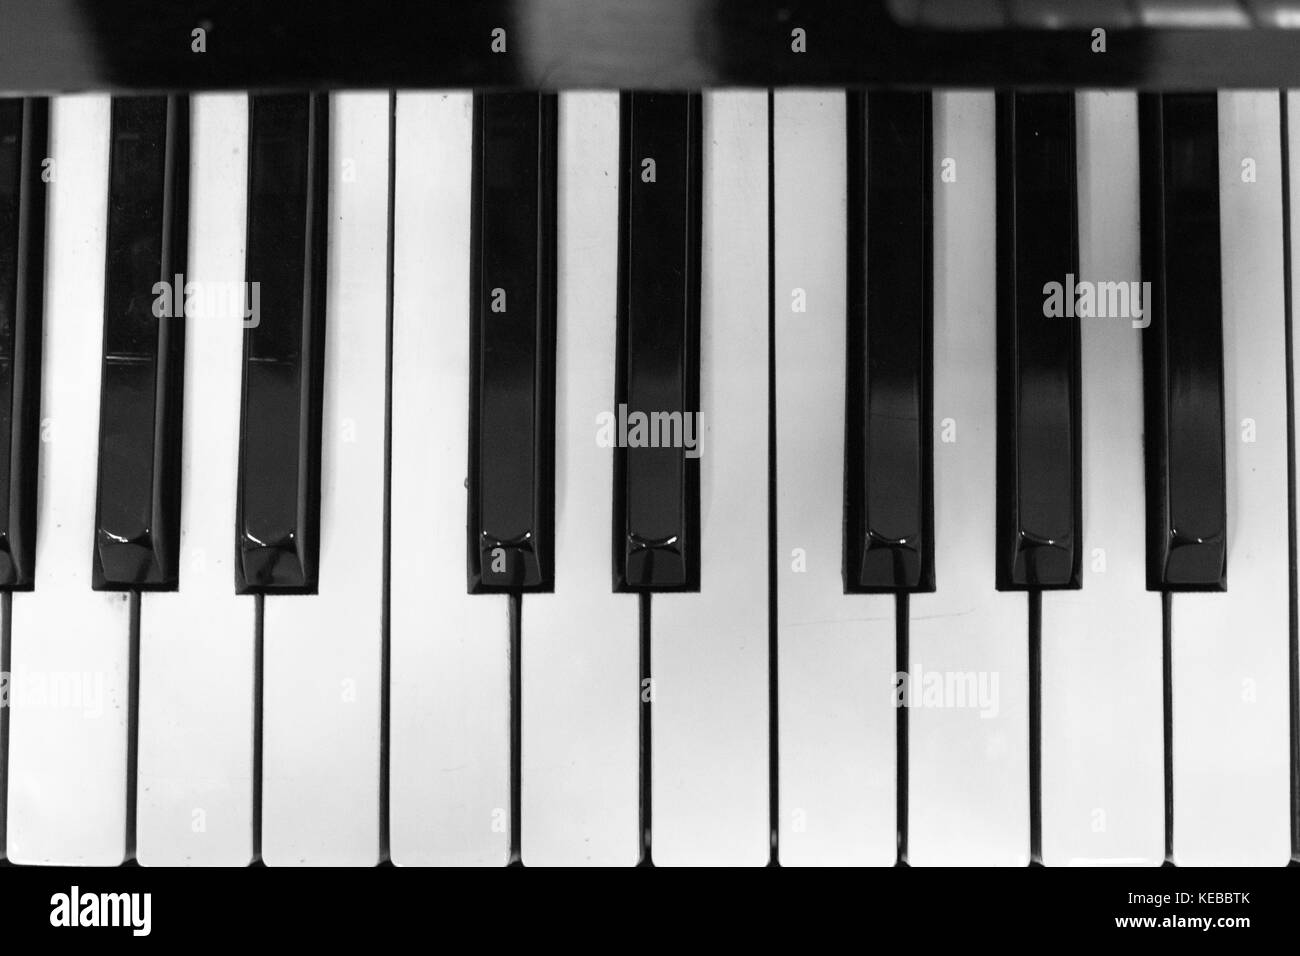 Piano keyboard. Home synthesizer. - Stock Image